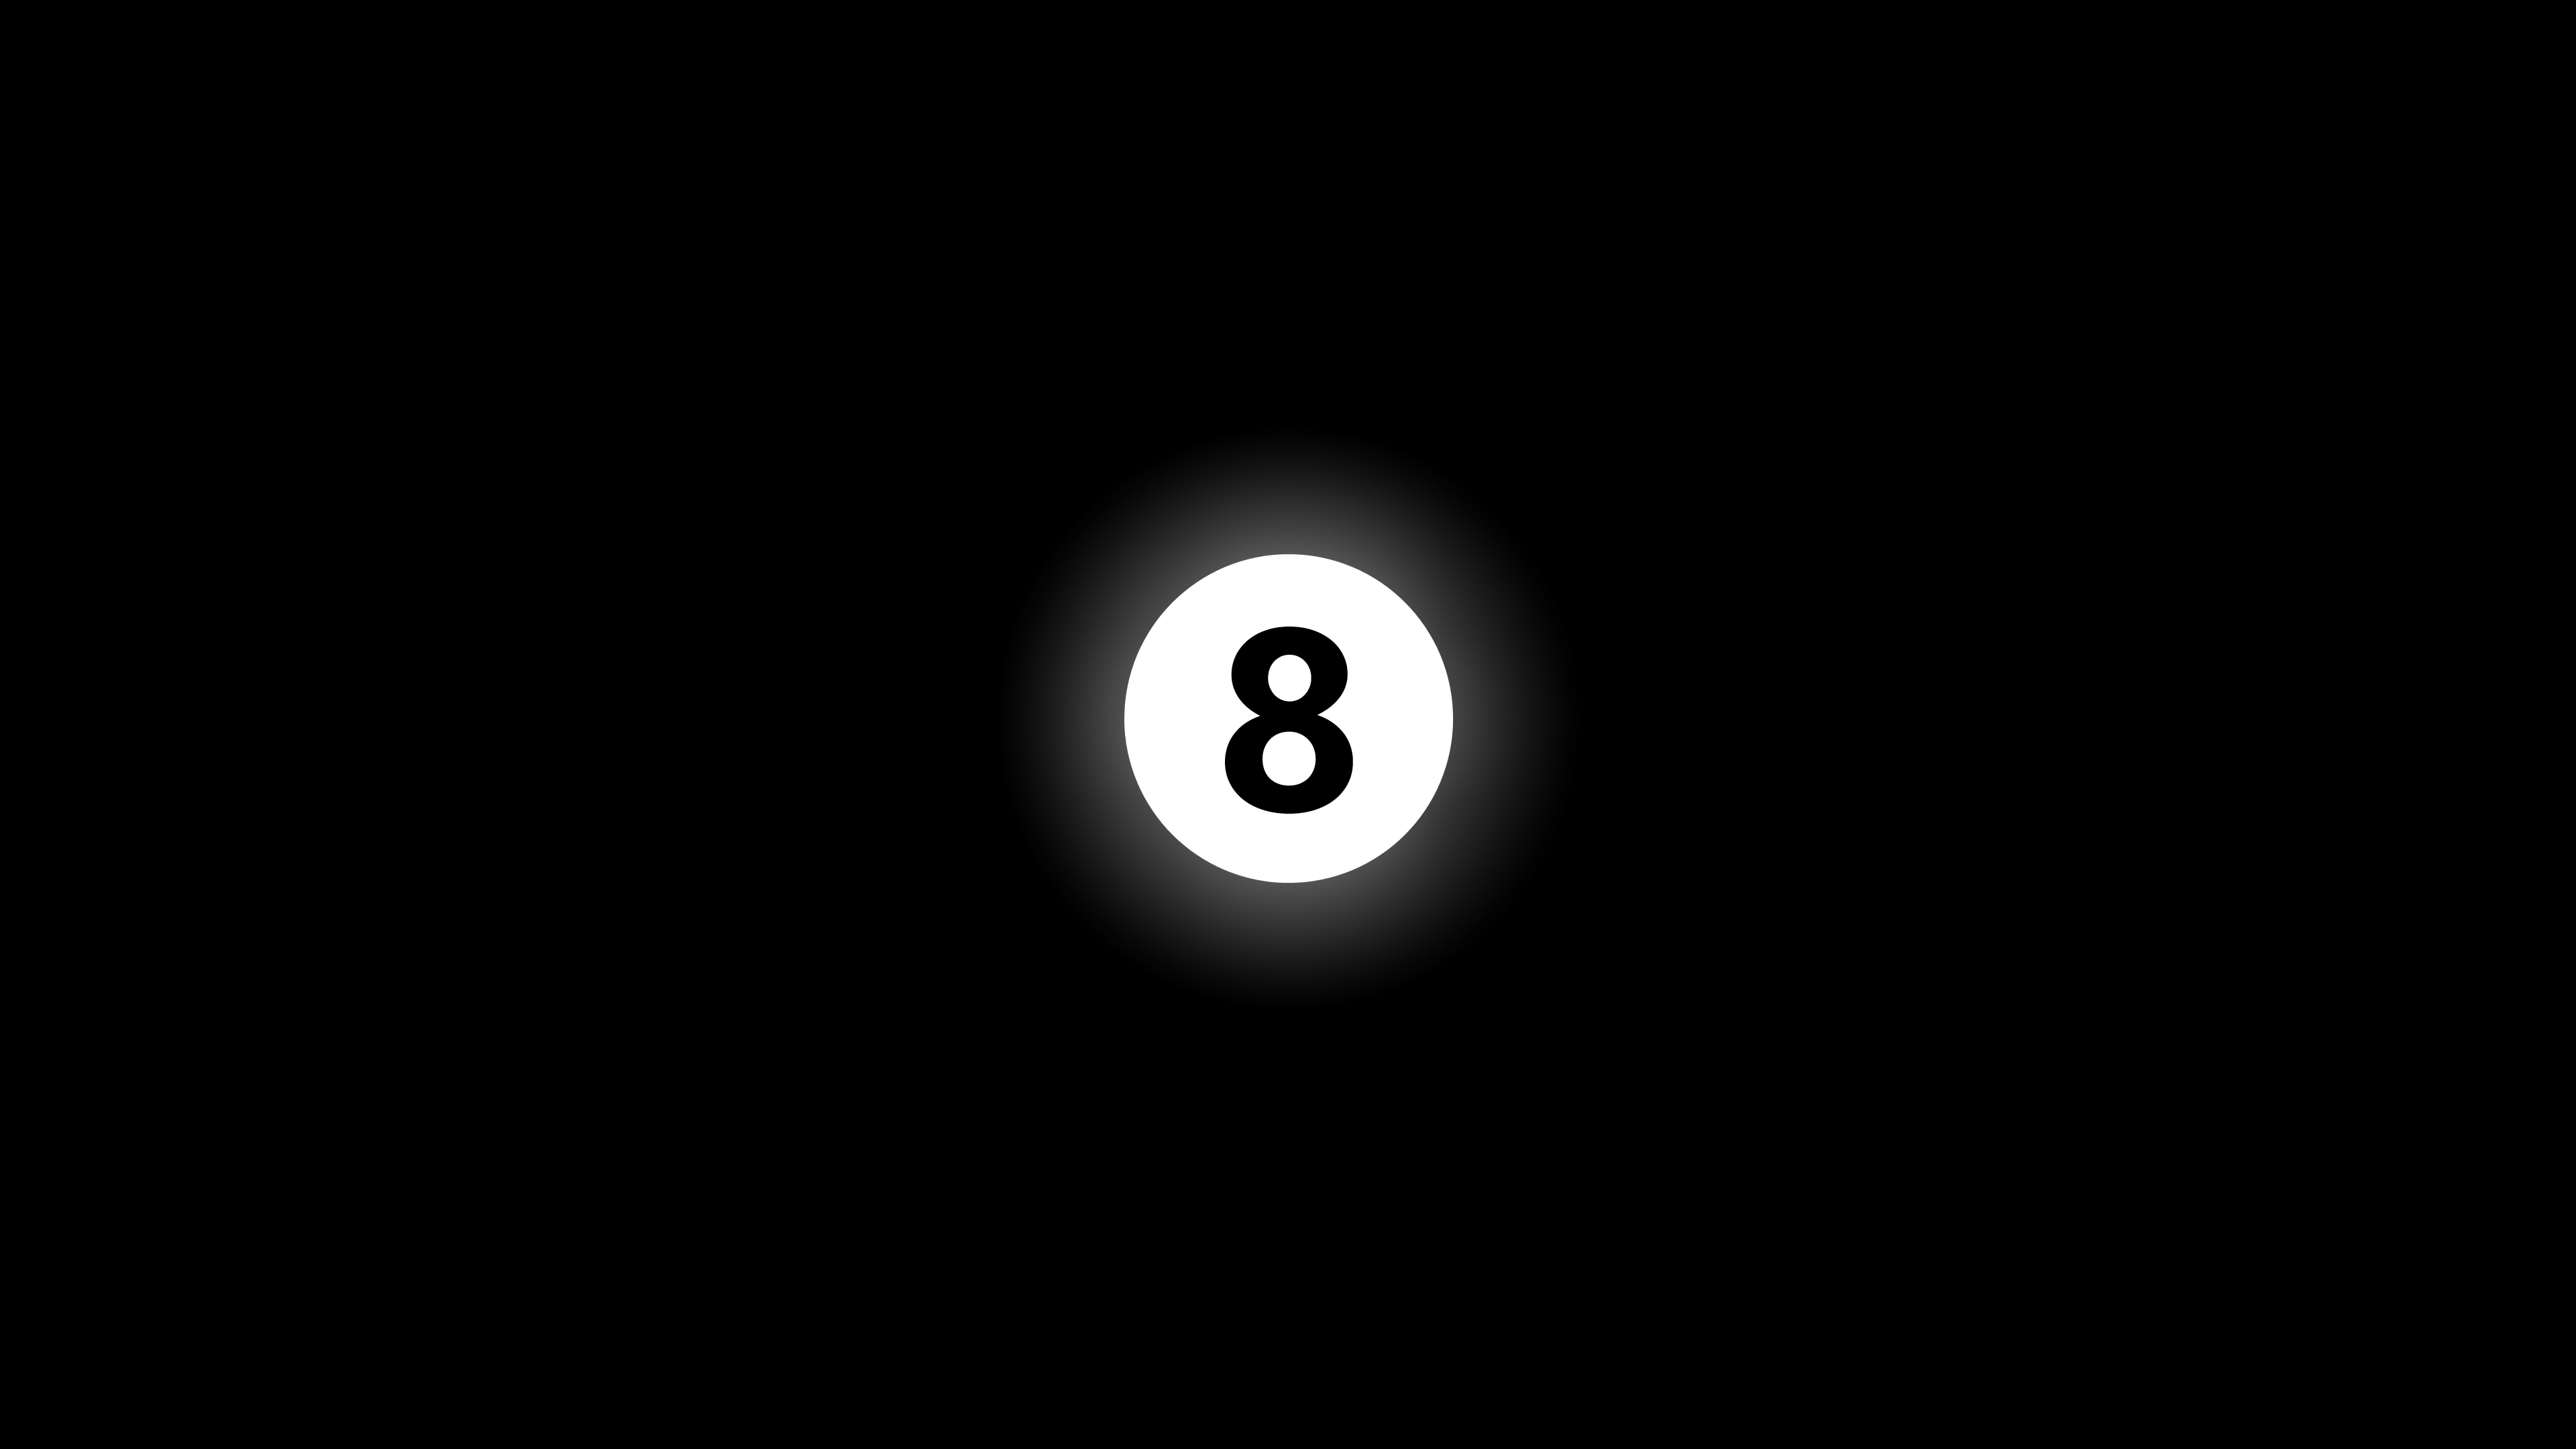 8 Ball Wallpapers  Wallpaper Cave